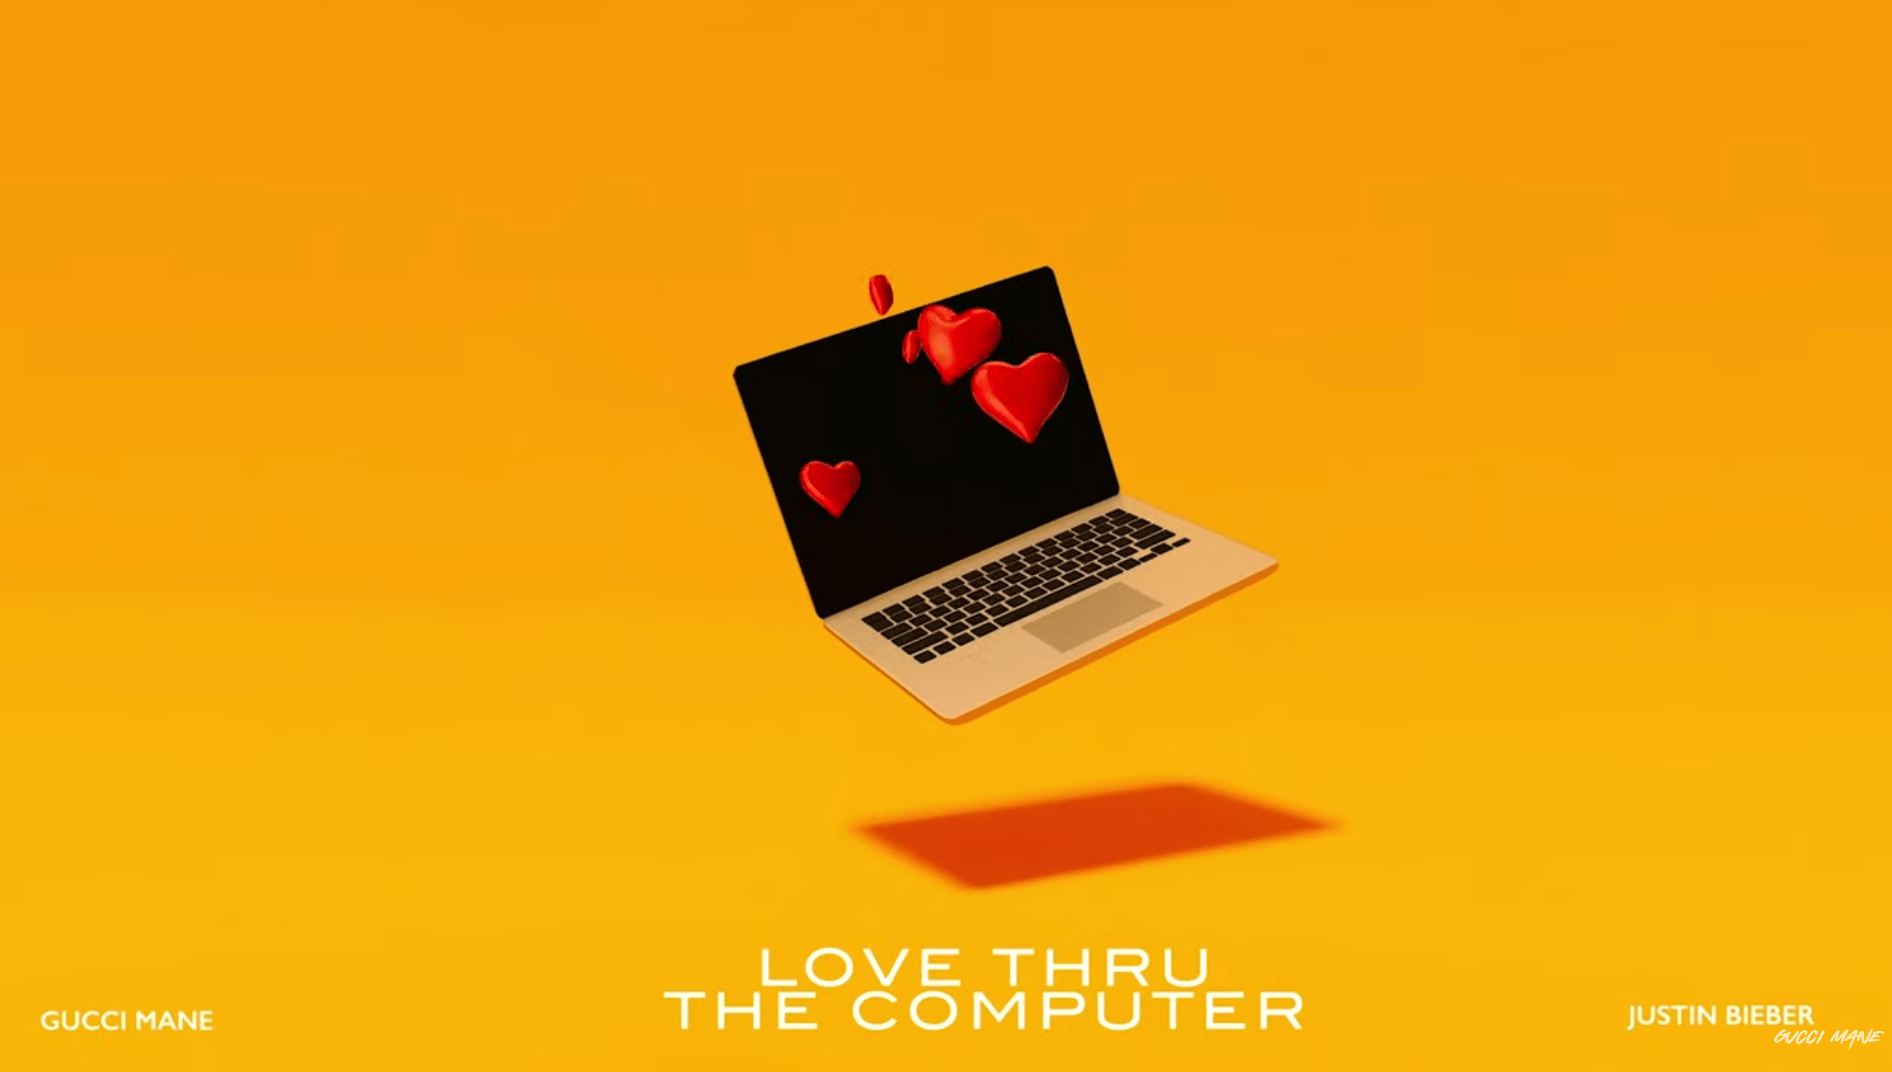 Gucci Mane – Love Thru The Computer Ft Justin Bieber